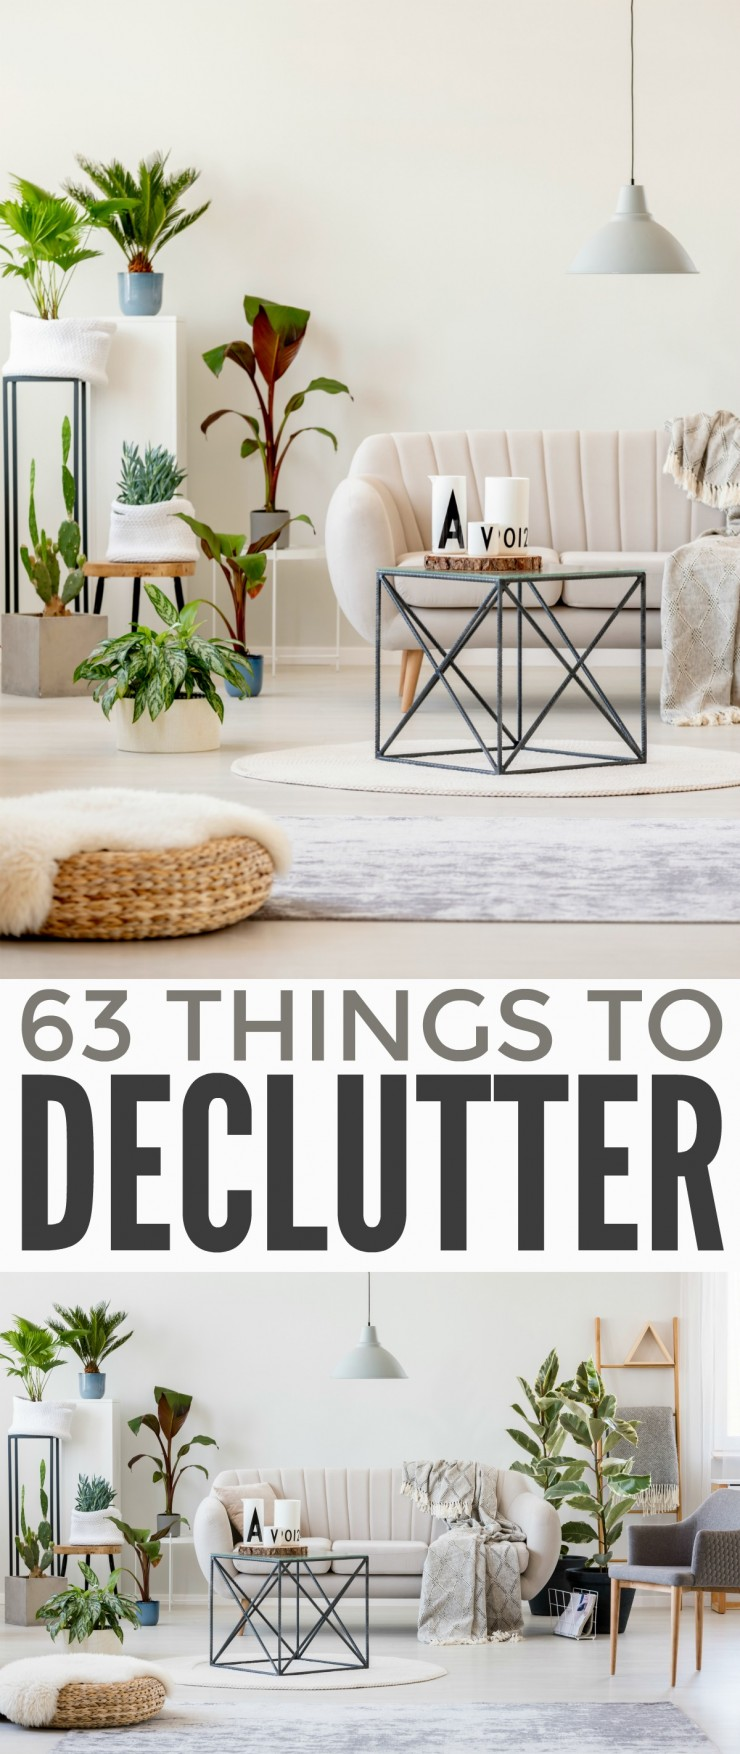 There are several things you can declutter right now to change the way you live and reduce your stress: 63 Things to Declutter Right Now